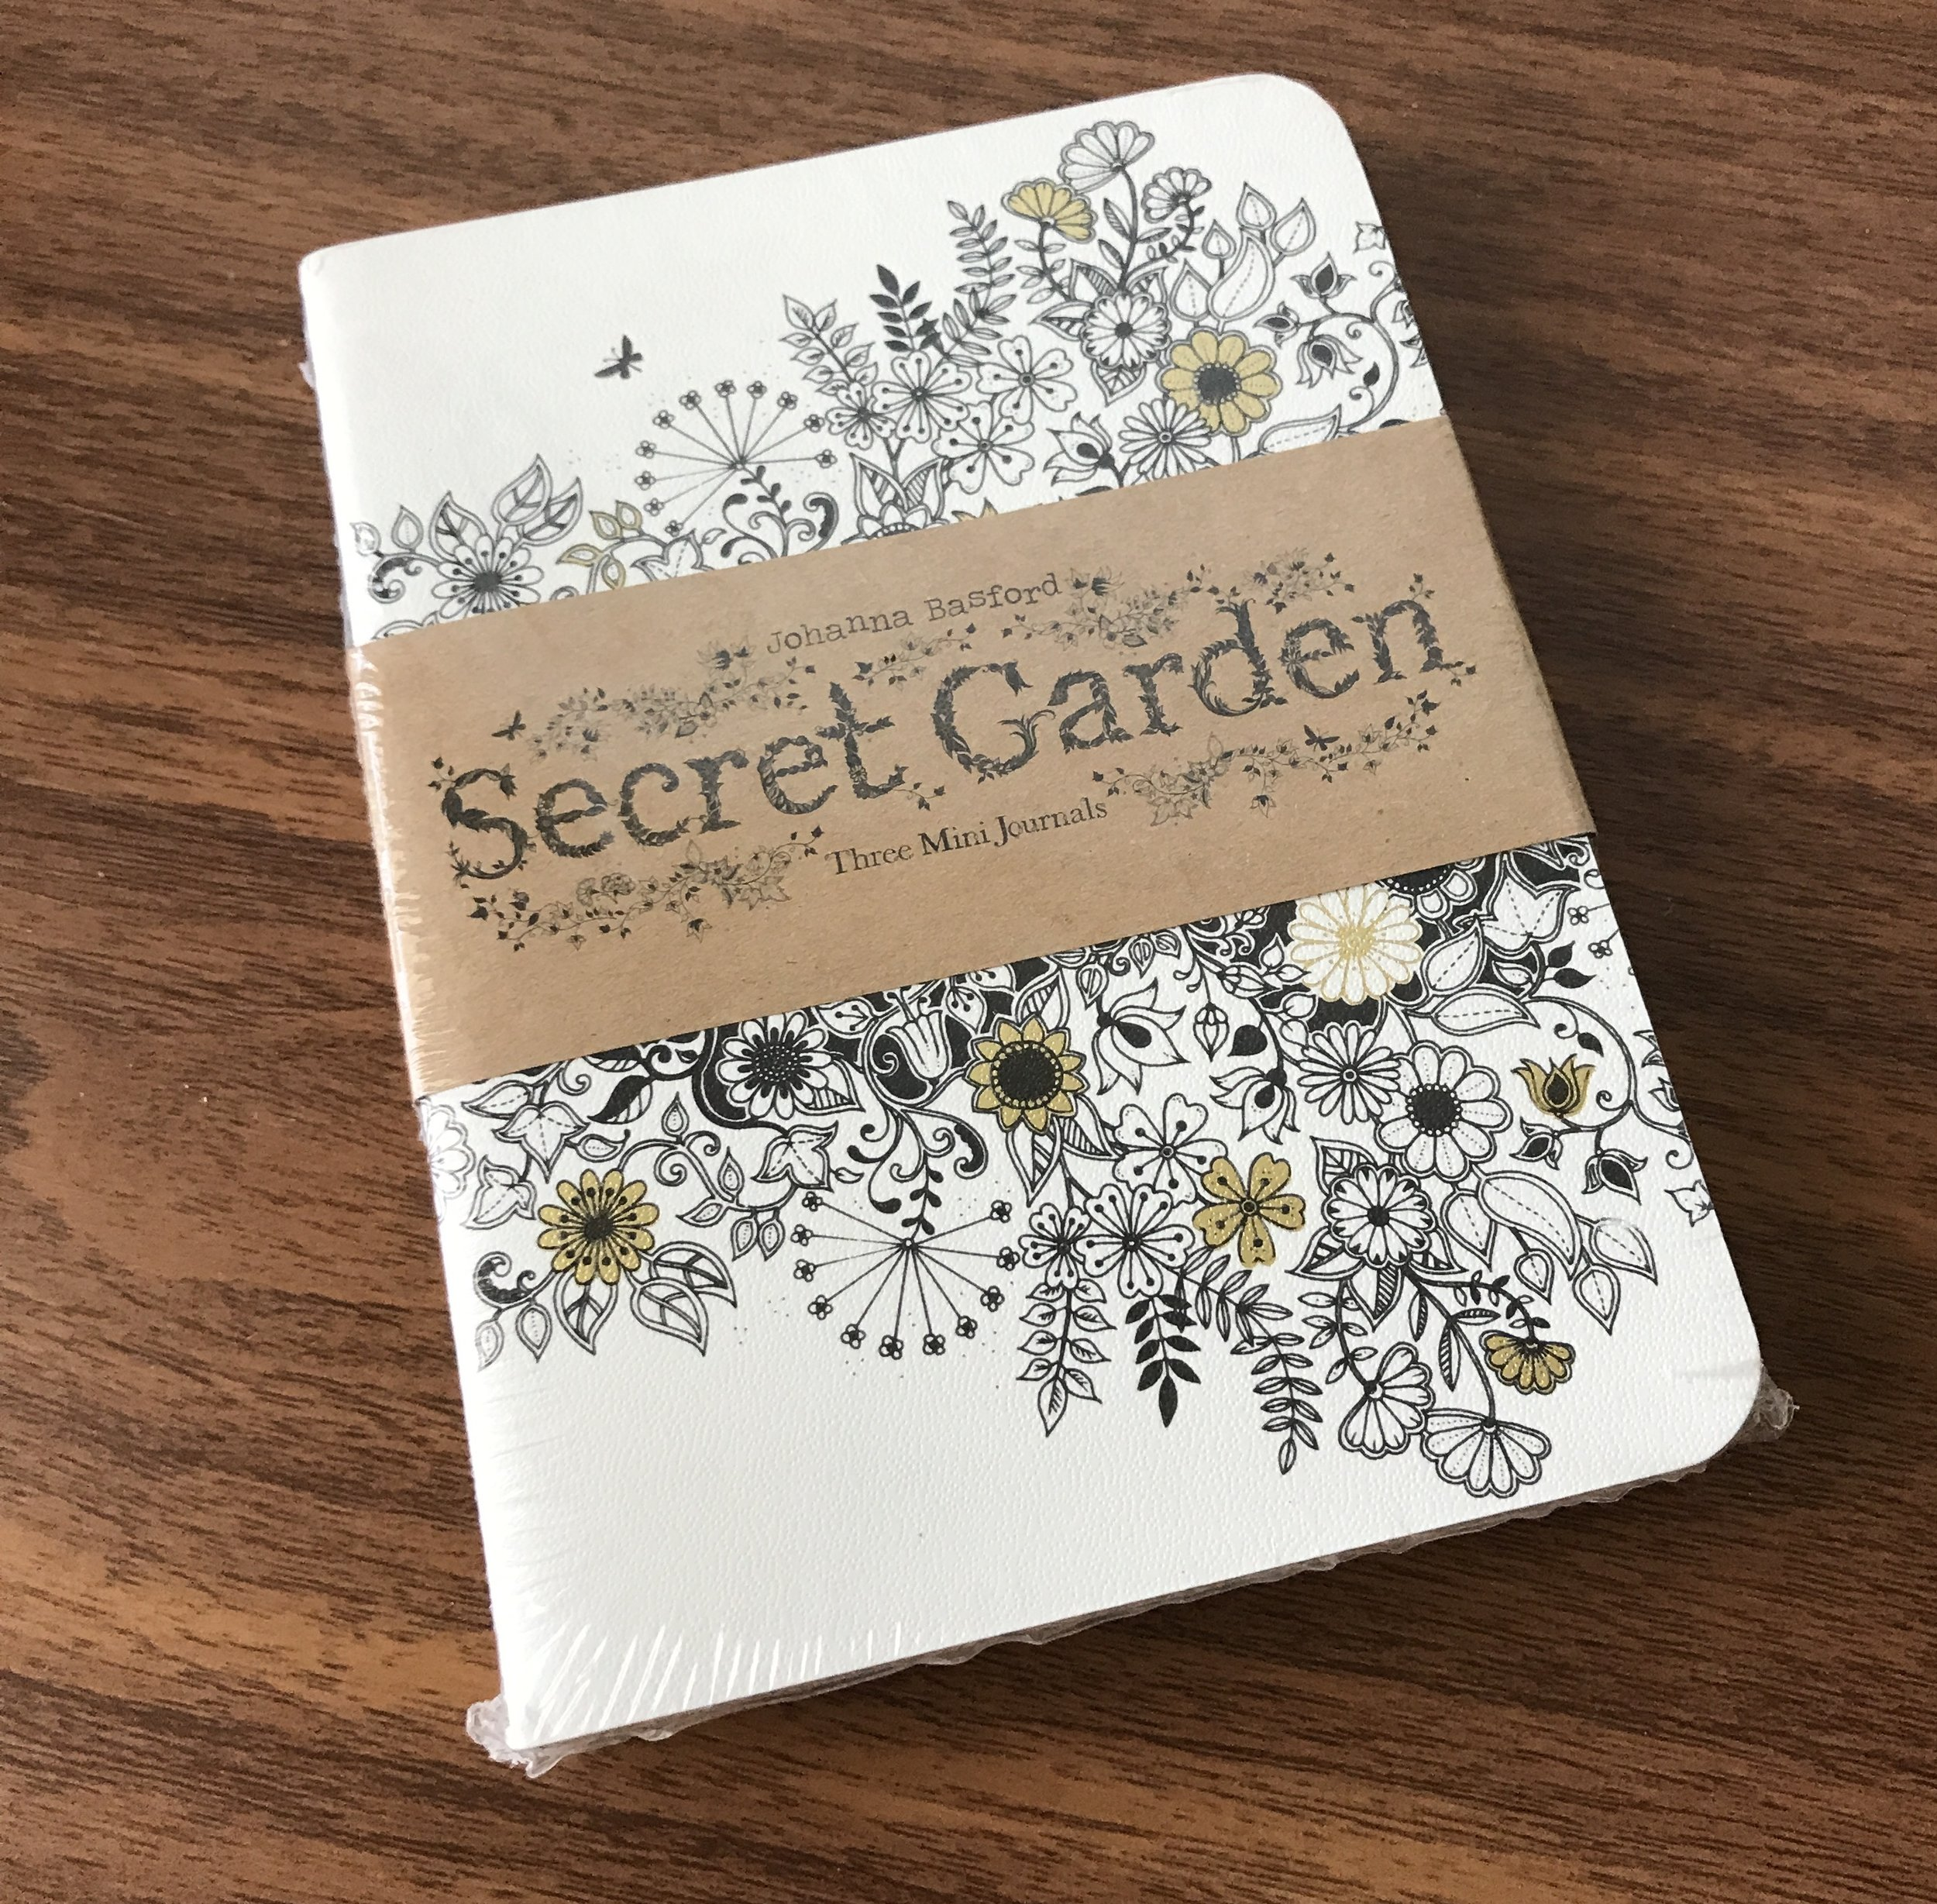 These Johanna Basford journals are among the prizes being given away this week!